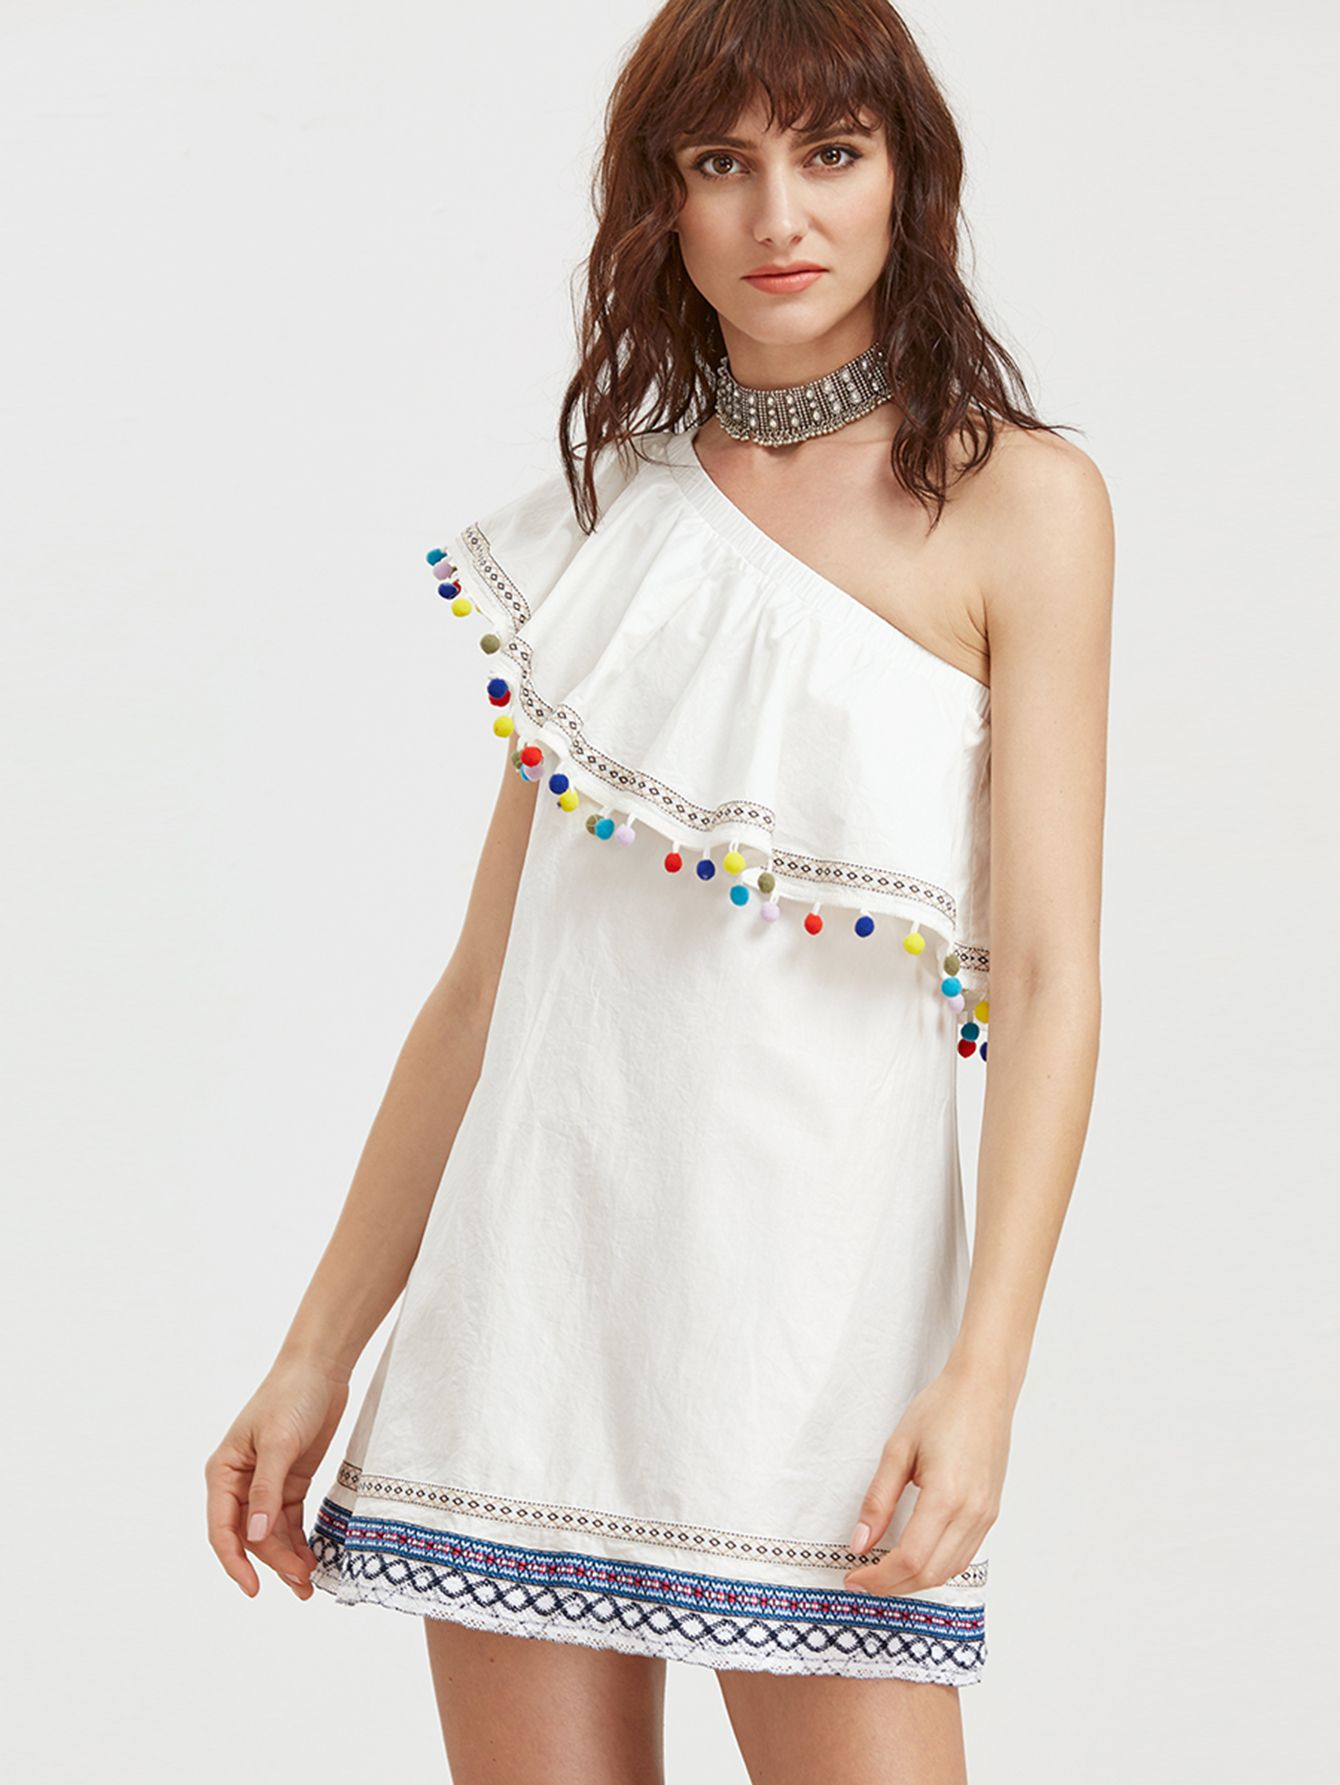 d56f9ca774 Shop White Embroidered Tape And Pom Pom Detail One Shoulder Dress online.  SheIn offers White Embroidered Tape And Pom Pom Detail One Shoulder Dress    more ...